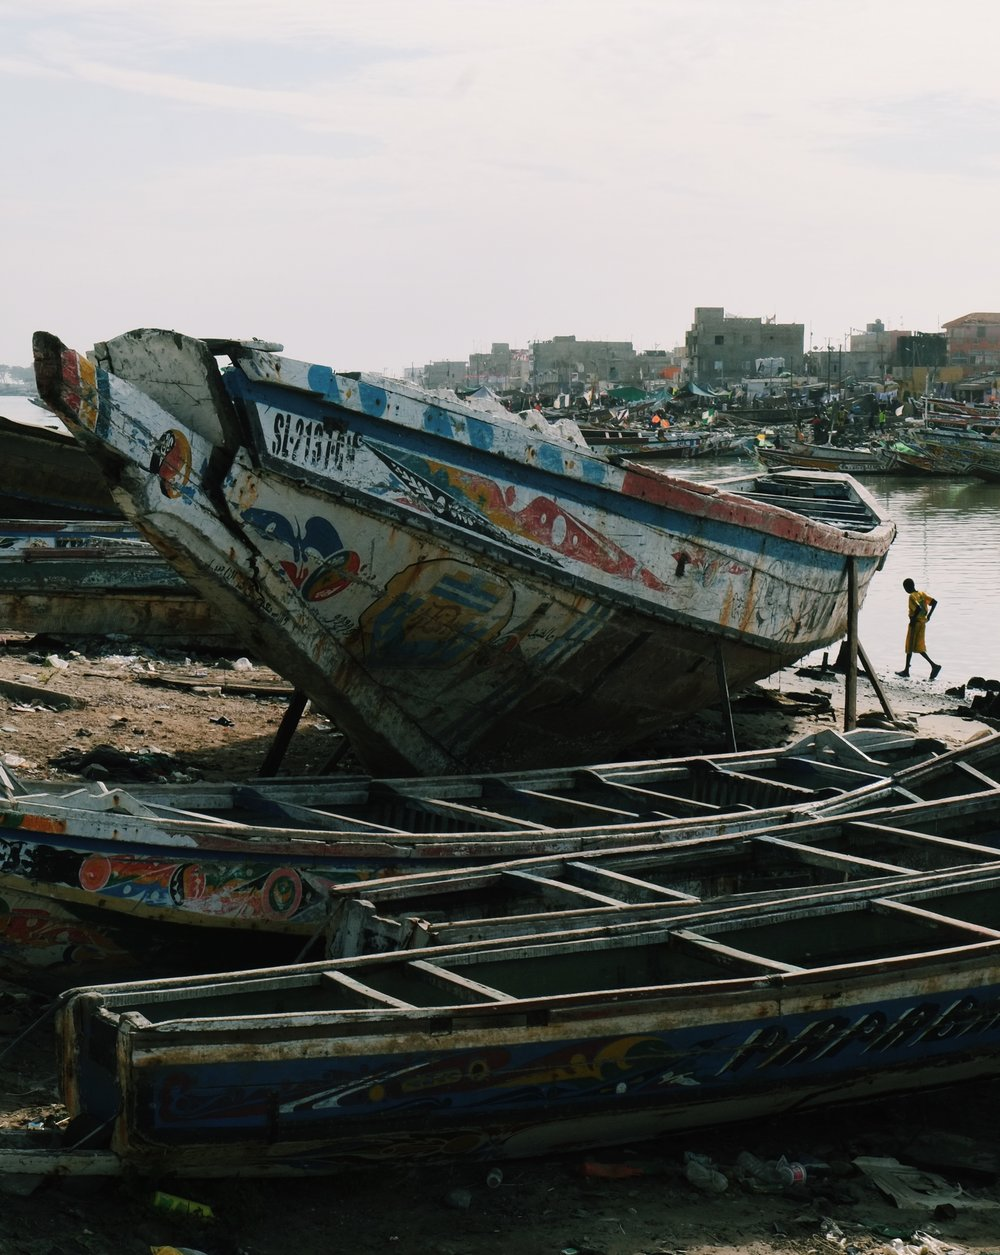 Saint-Louis boats in Senegal by Joost Bastmeijer.jpeg